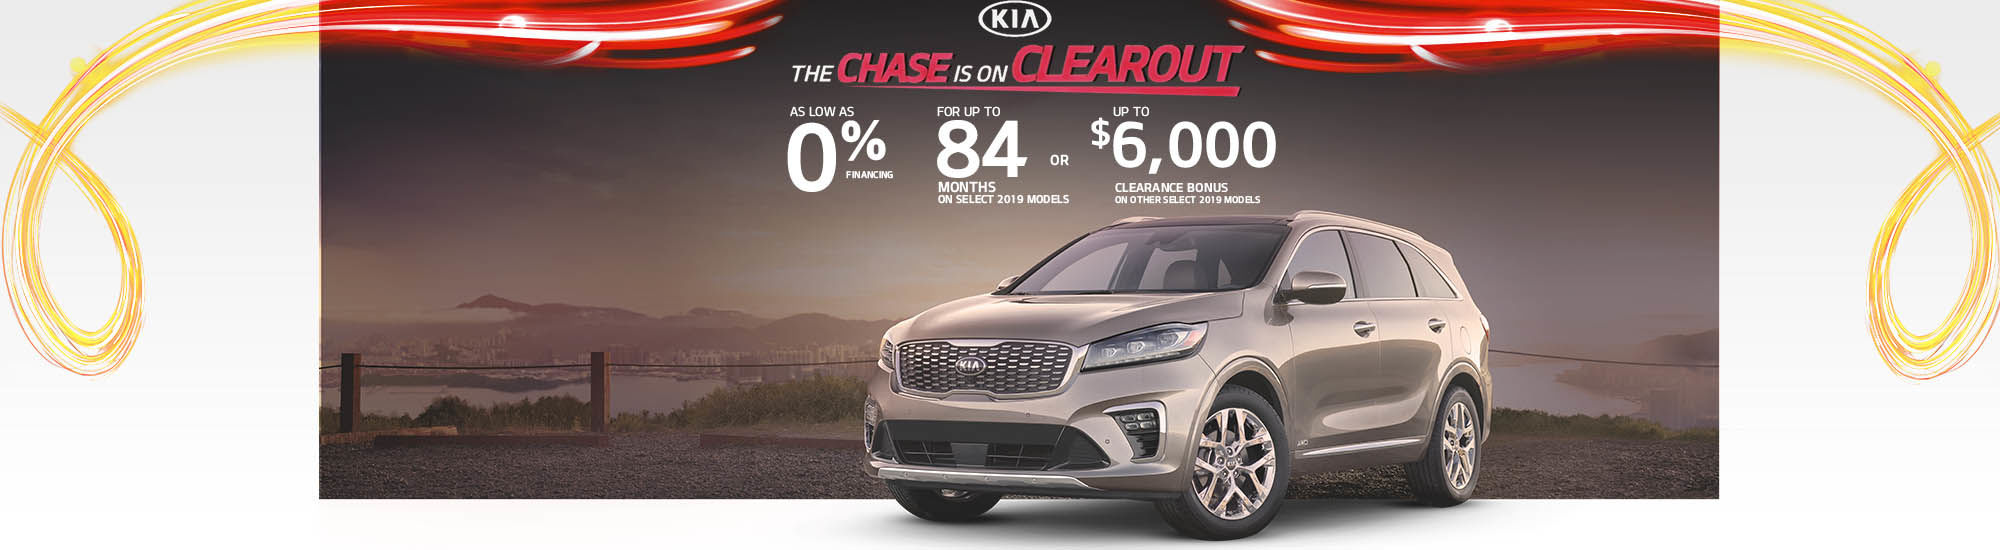 The chase is on clearout Kia